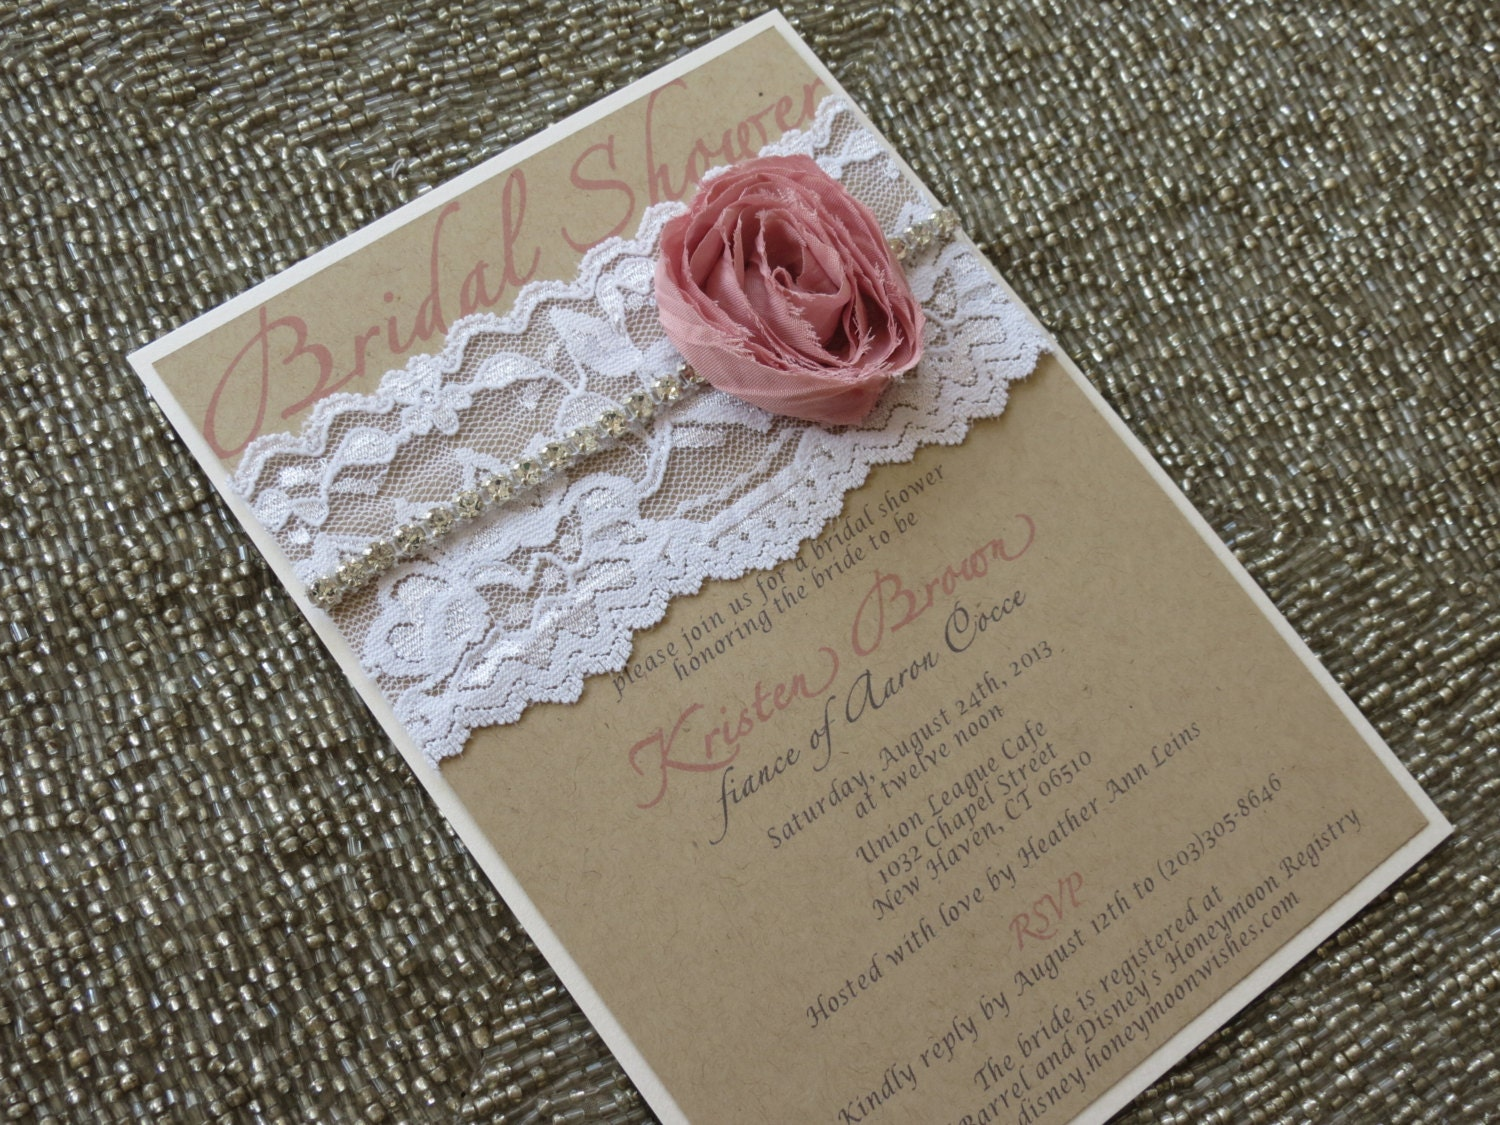 burlap and lace wedding invitations burlap wedding ideas ideas diy burlap wedding invitations hailey shabby chic burlap and lace bridal by